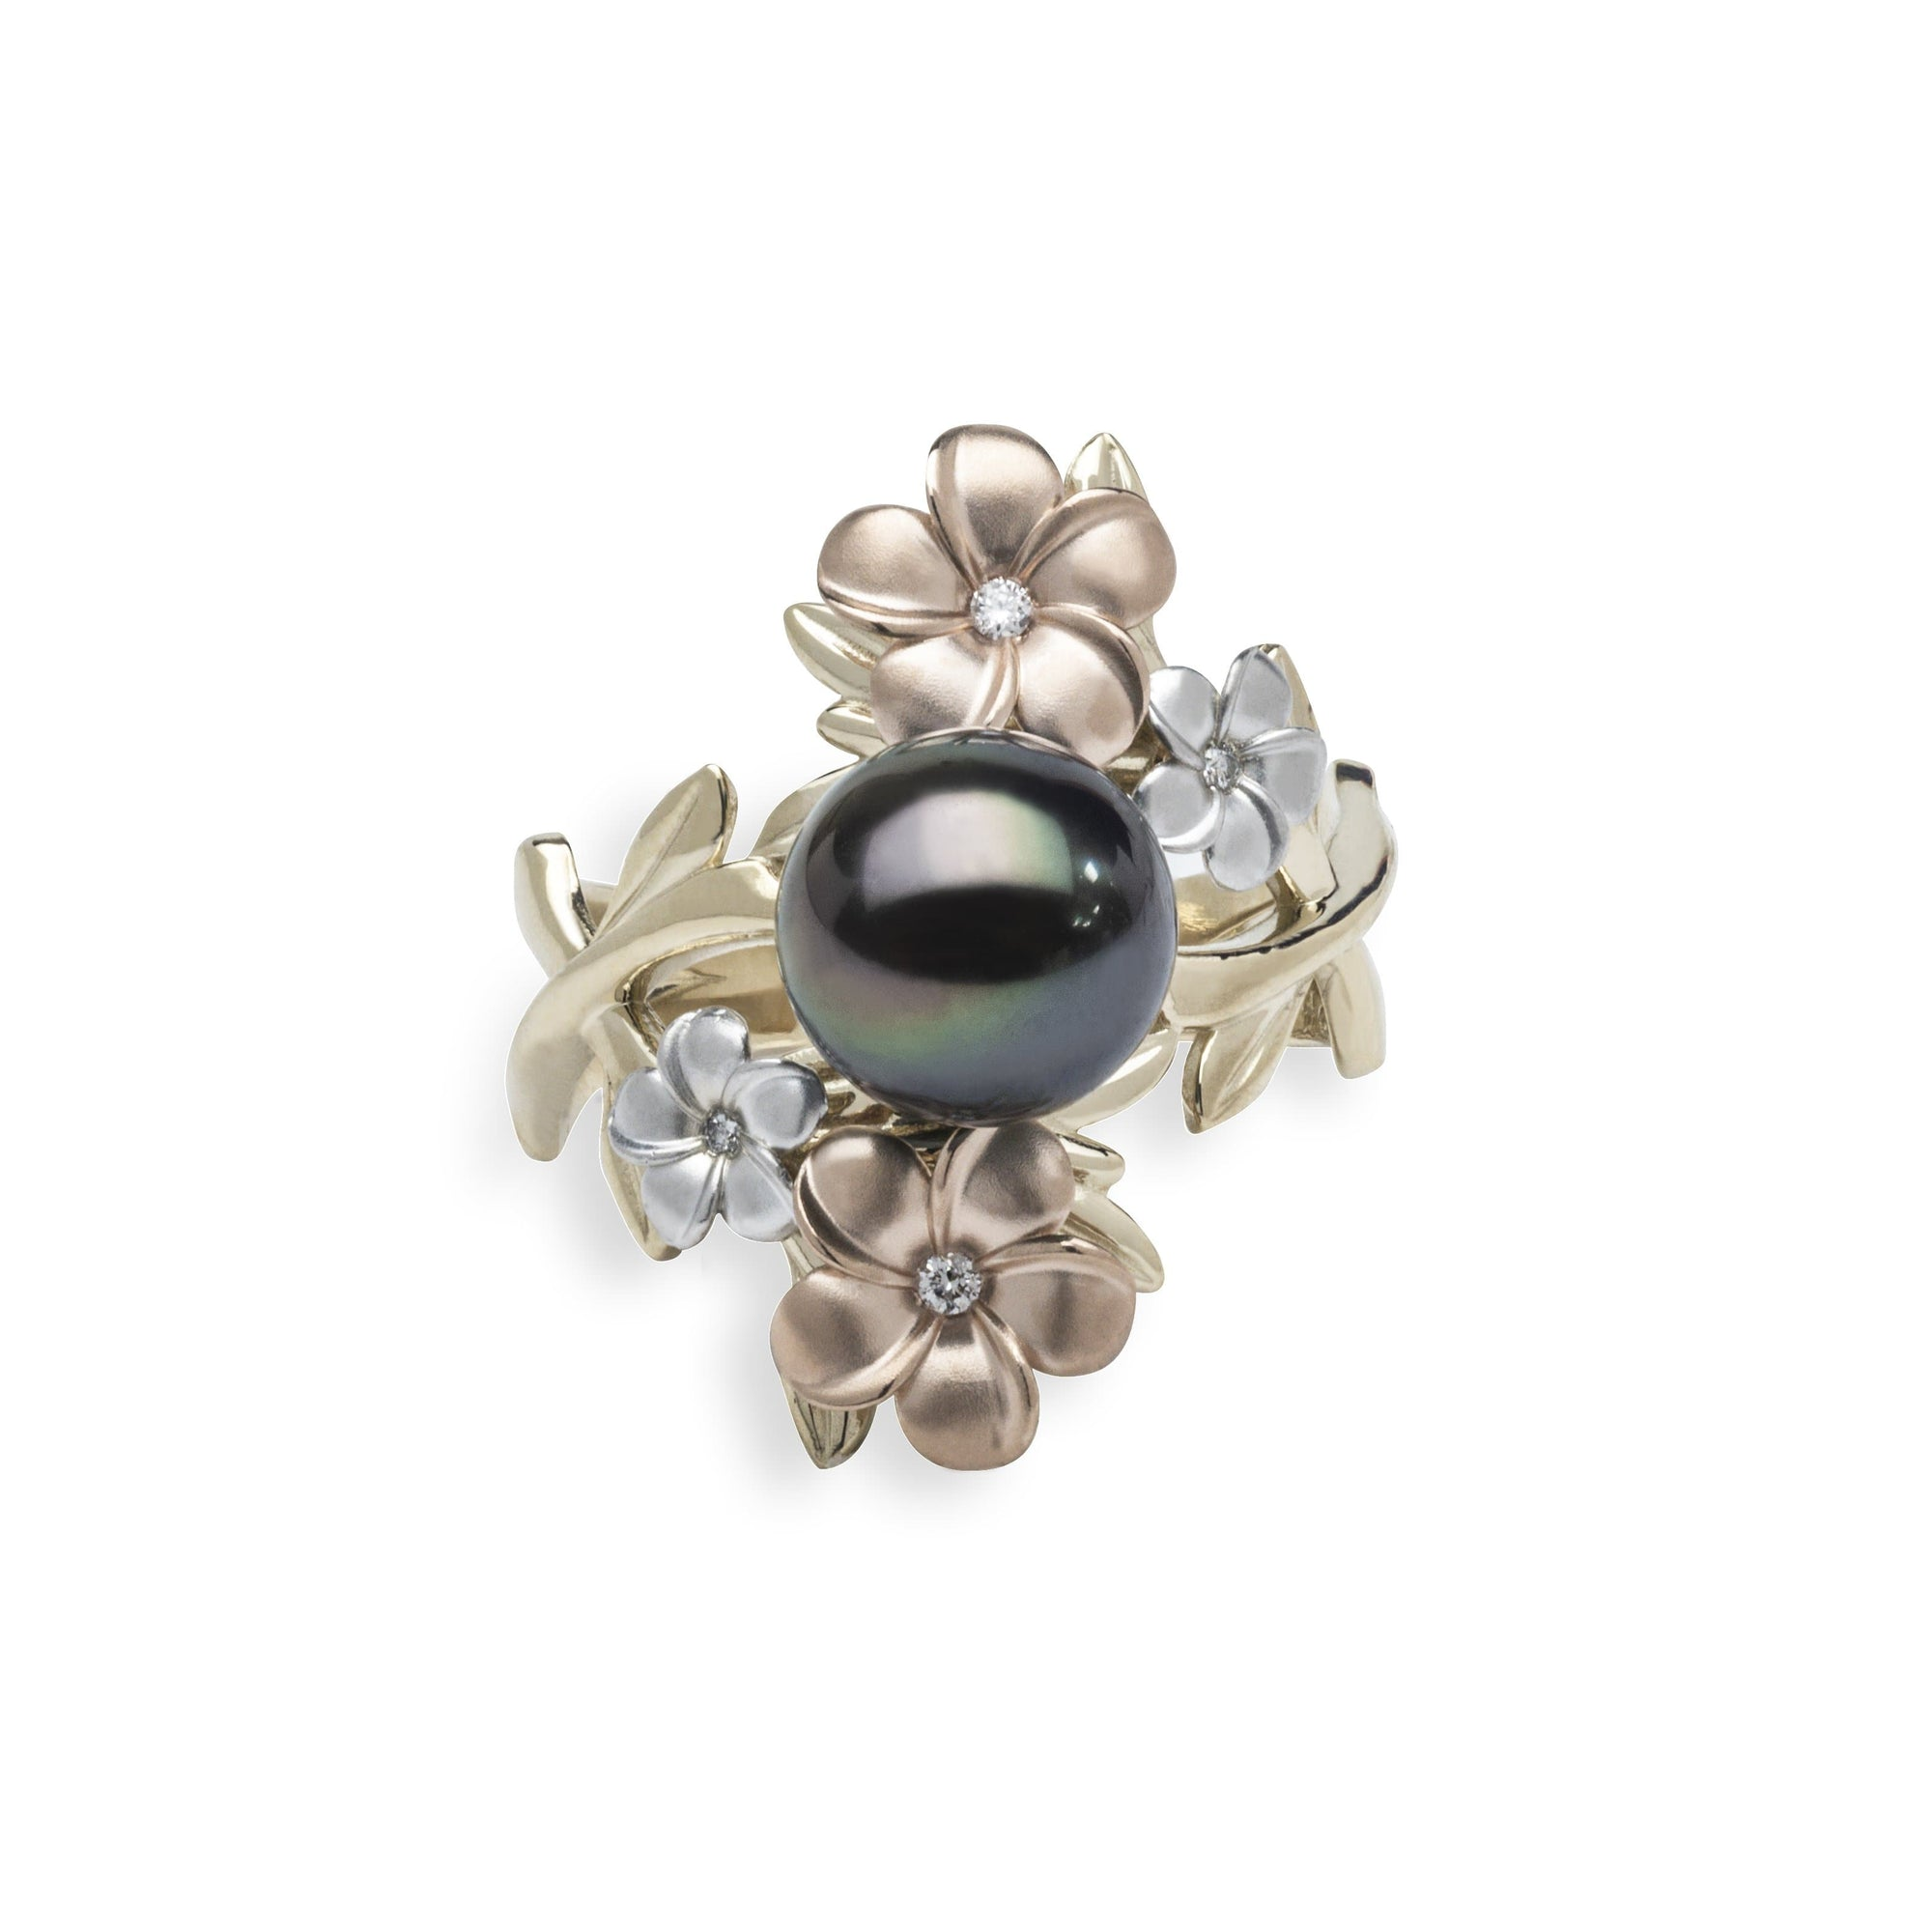 Pearls in Bloom Tahitian Black Pearl Ring in Tri Color Gold with Diamonds - 006-15401 Side